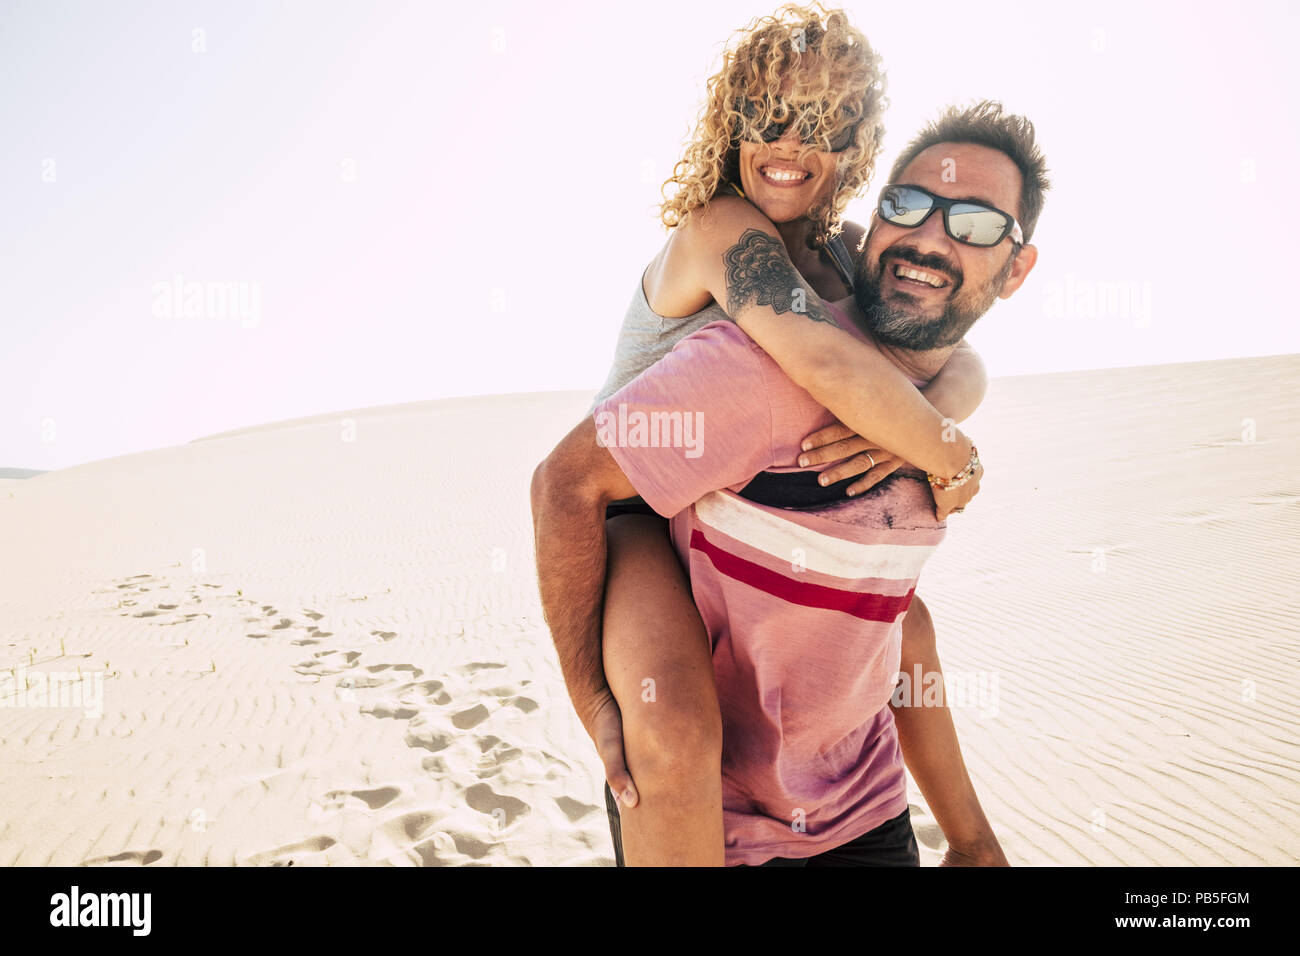 people and couple in love have fun and enjoy the desert dunes at the beach on vacation. man carry on his back the beautiful curly hair woman smiling a - Stock Image